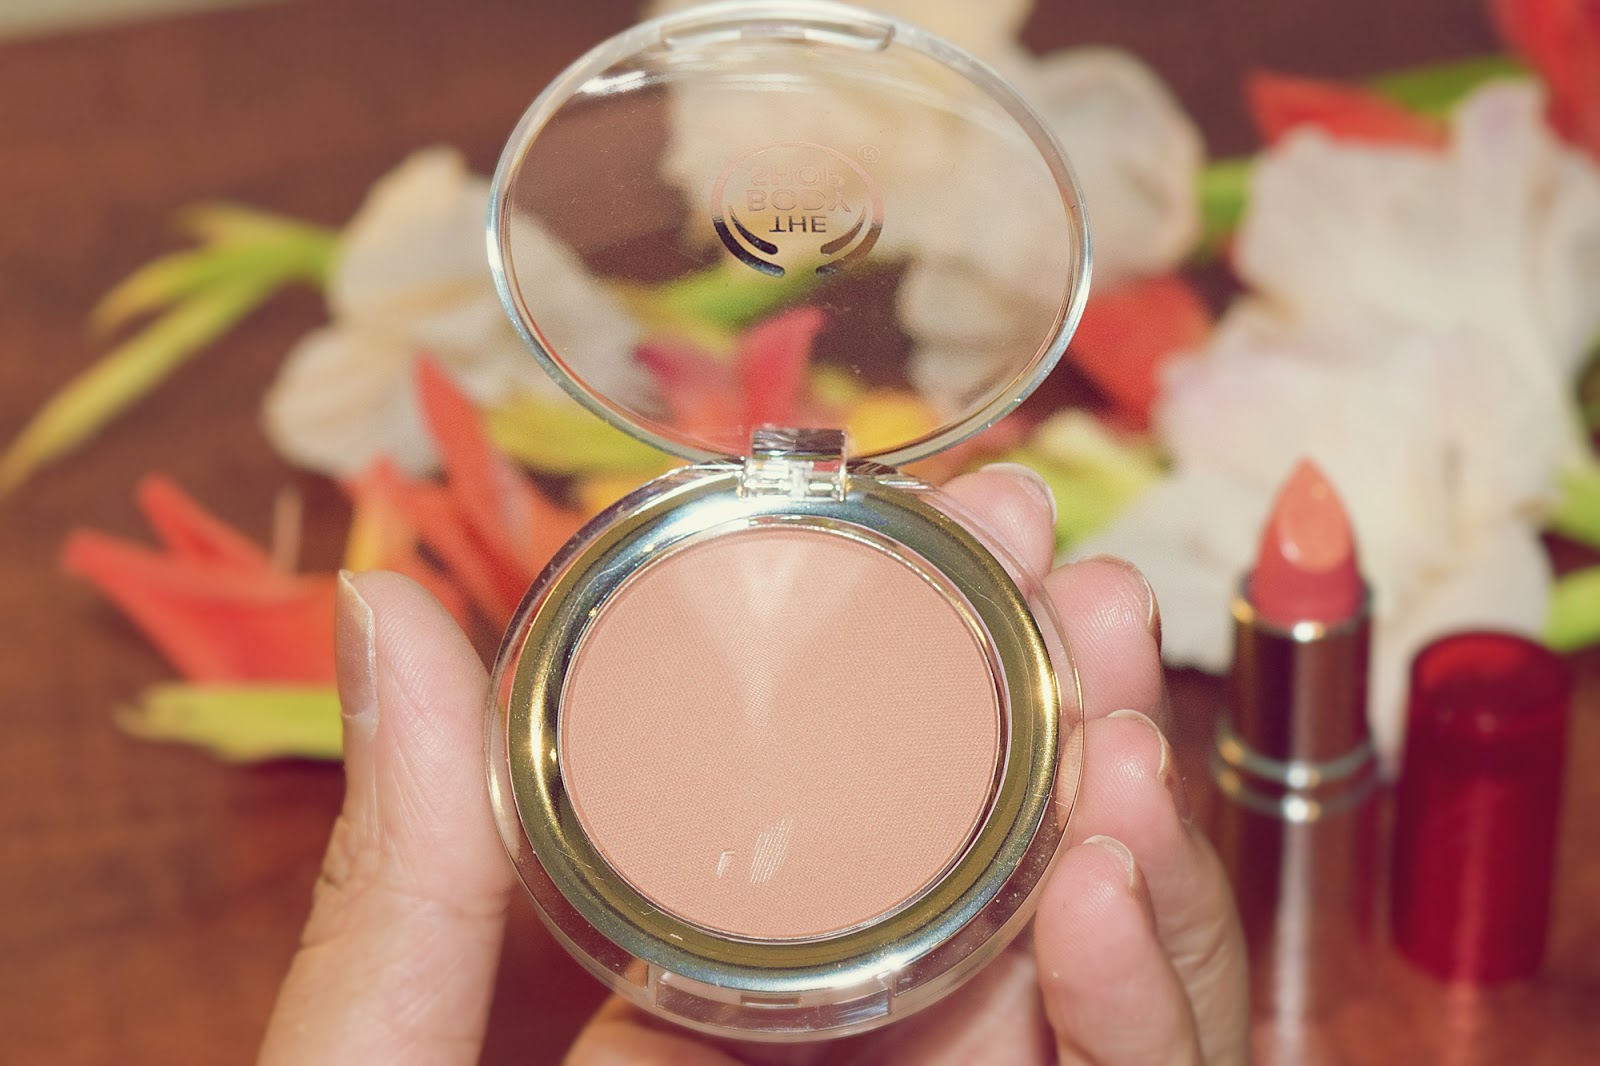 The Body Shop All-In-One Cheek Color in 09 Truffle